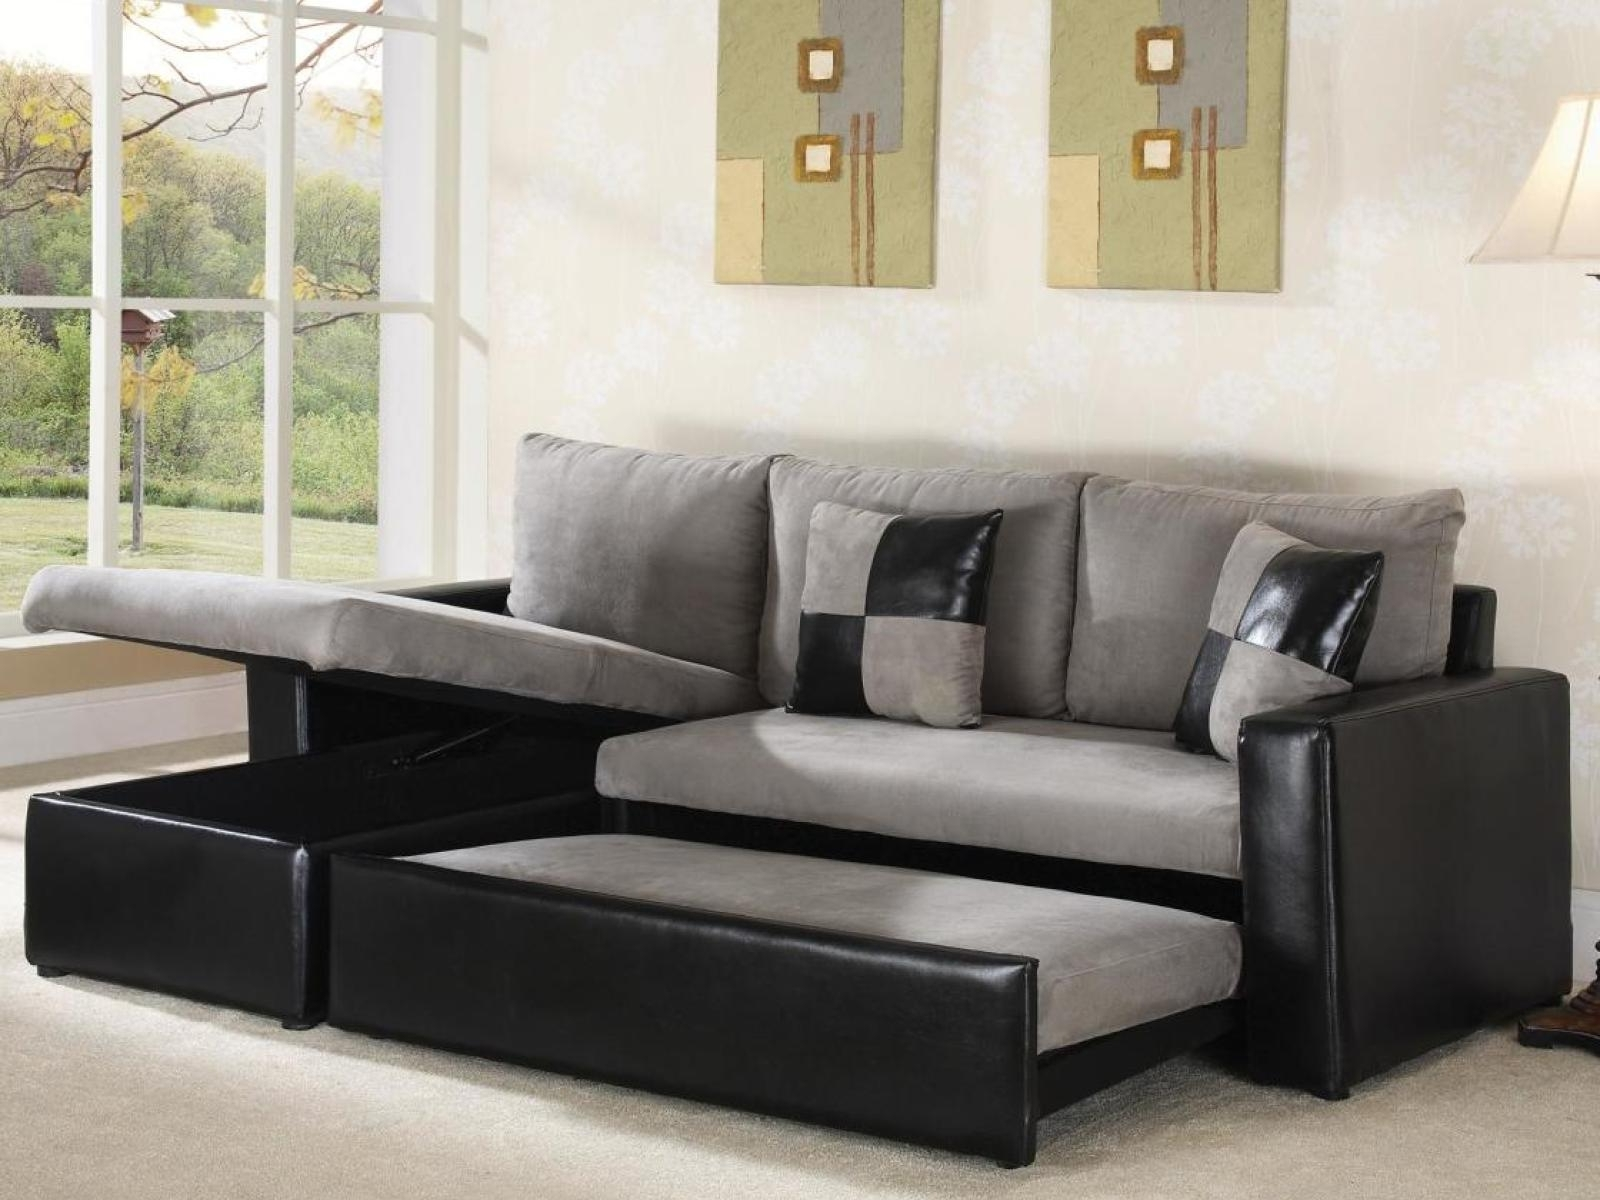 Epic L Shaped Sectional Sleeper Sofa 80 In Ava Tufted Sleeper Sofa With Regard To Most Popular L Shaped Sectional Sleeper Sofas (View 2 of 20)